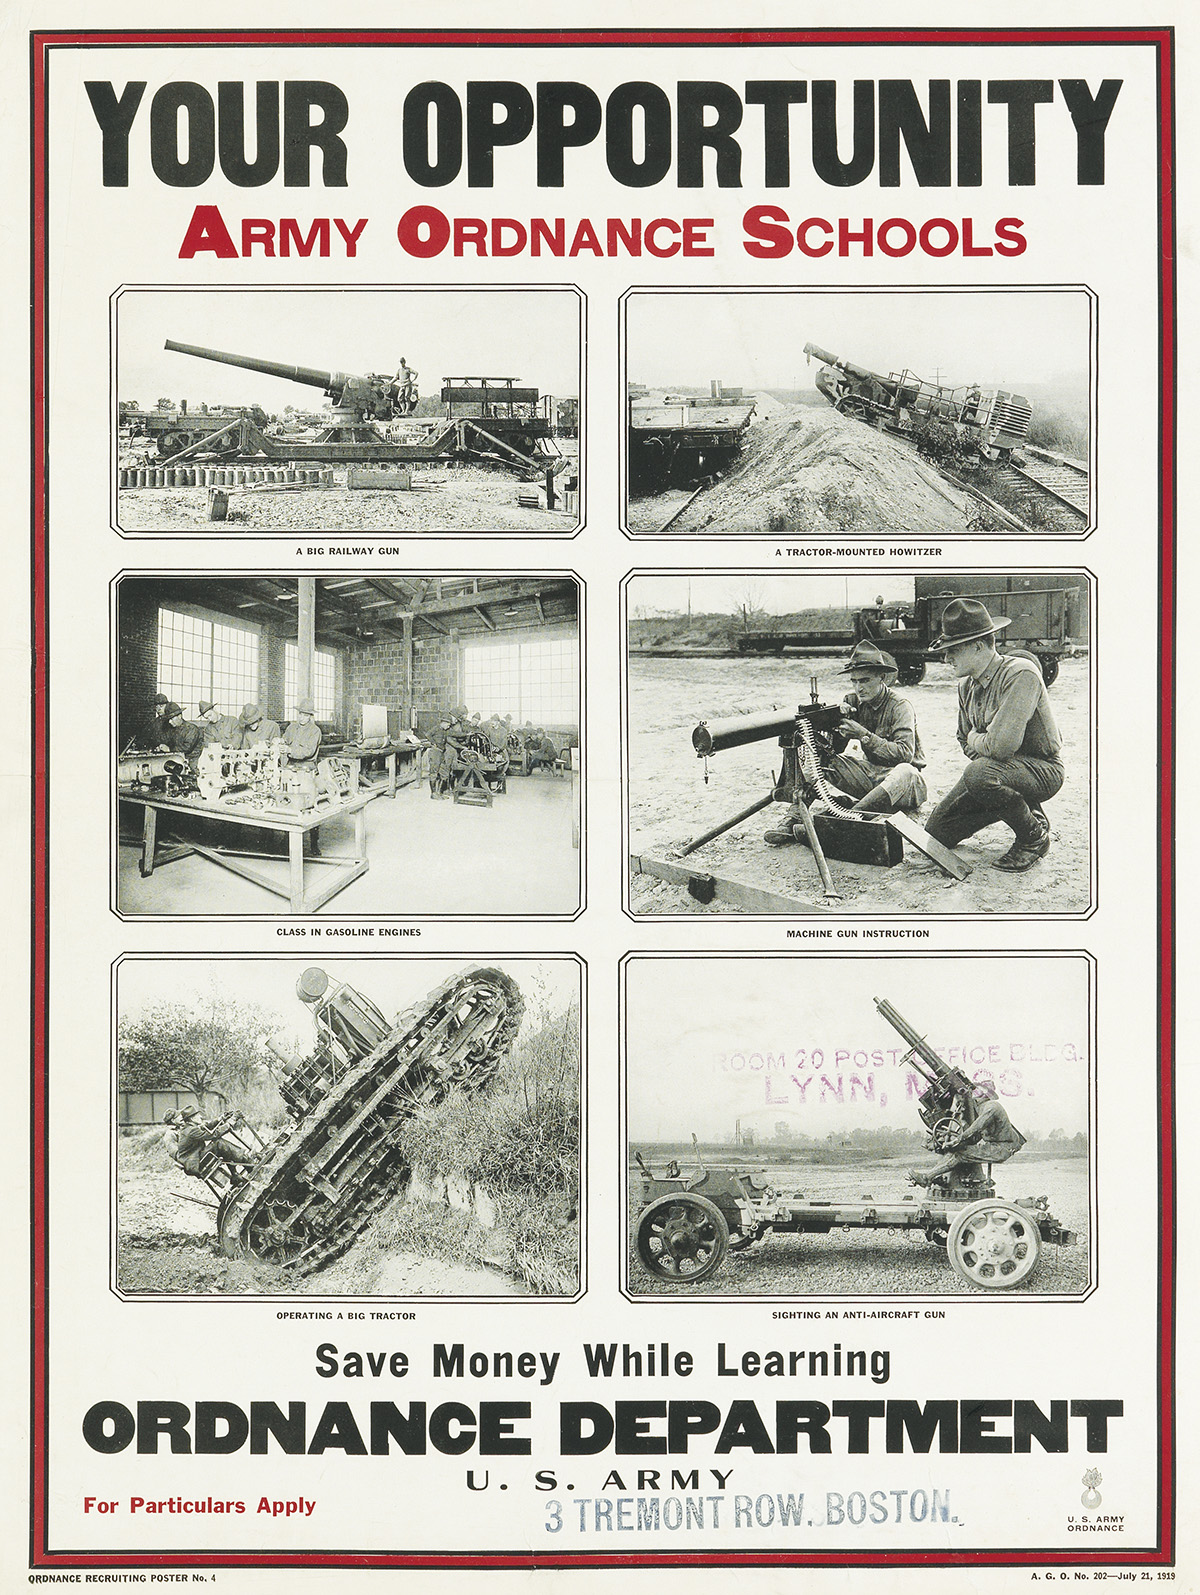 DESIGNER UNKNOWN. YOUR OPPORTUNITY / ARMY ORDNANCE SCHOOLS. 1919. 25x19 inches, 63x48 cm.